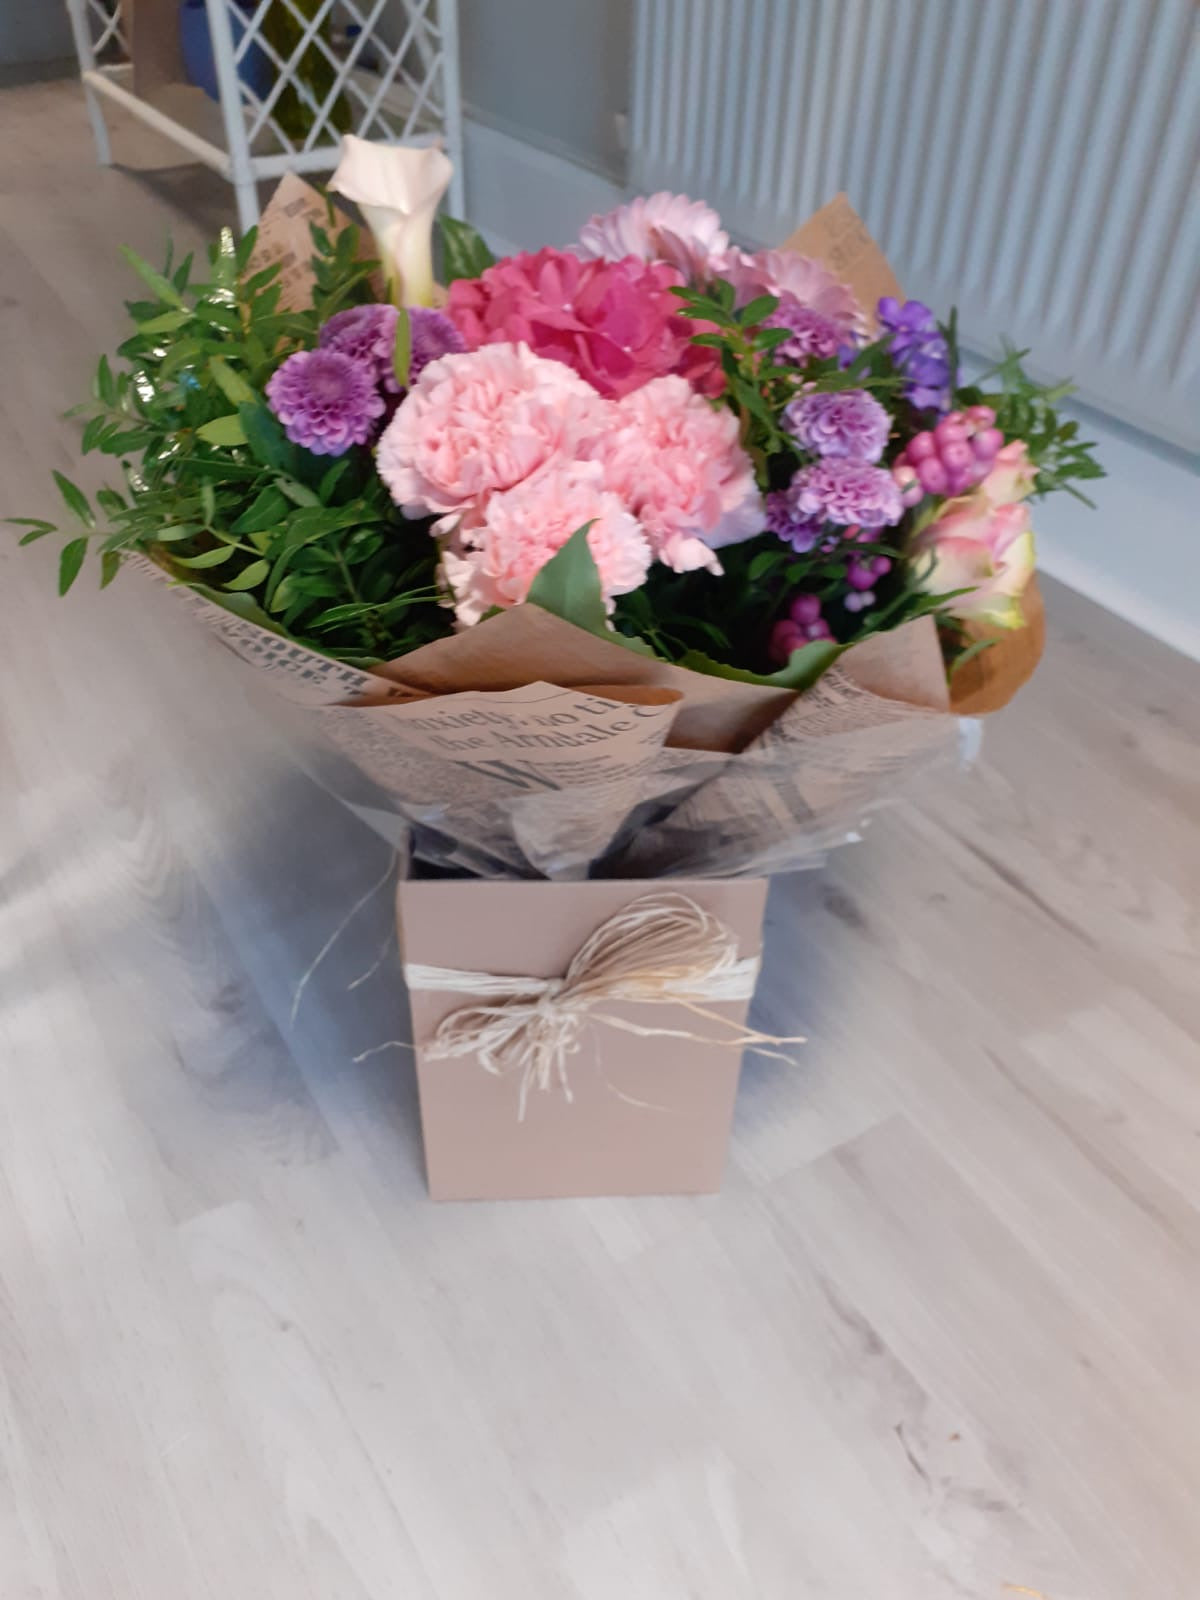 The Florist Choice Bouquet €40